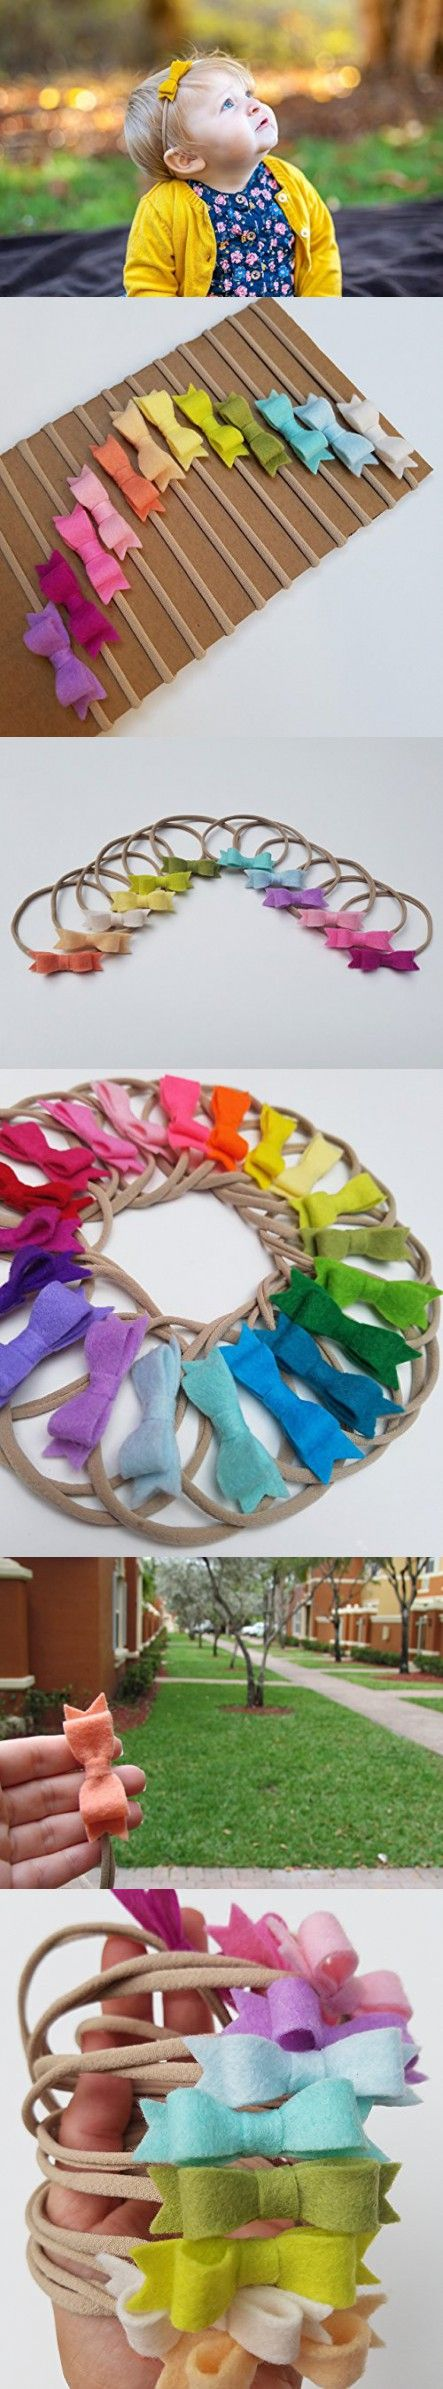 RAINBOW Mini Bow set of 12 baby nylon headbands in Pastel Colors | Nähen